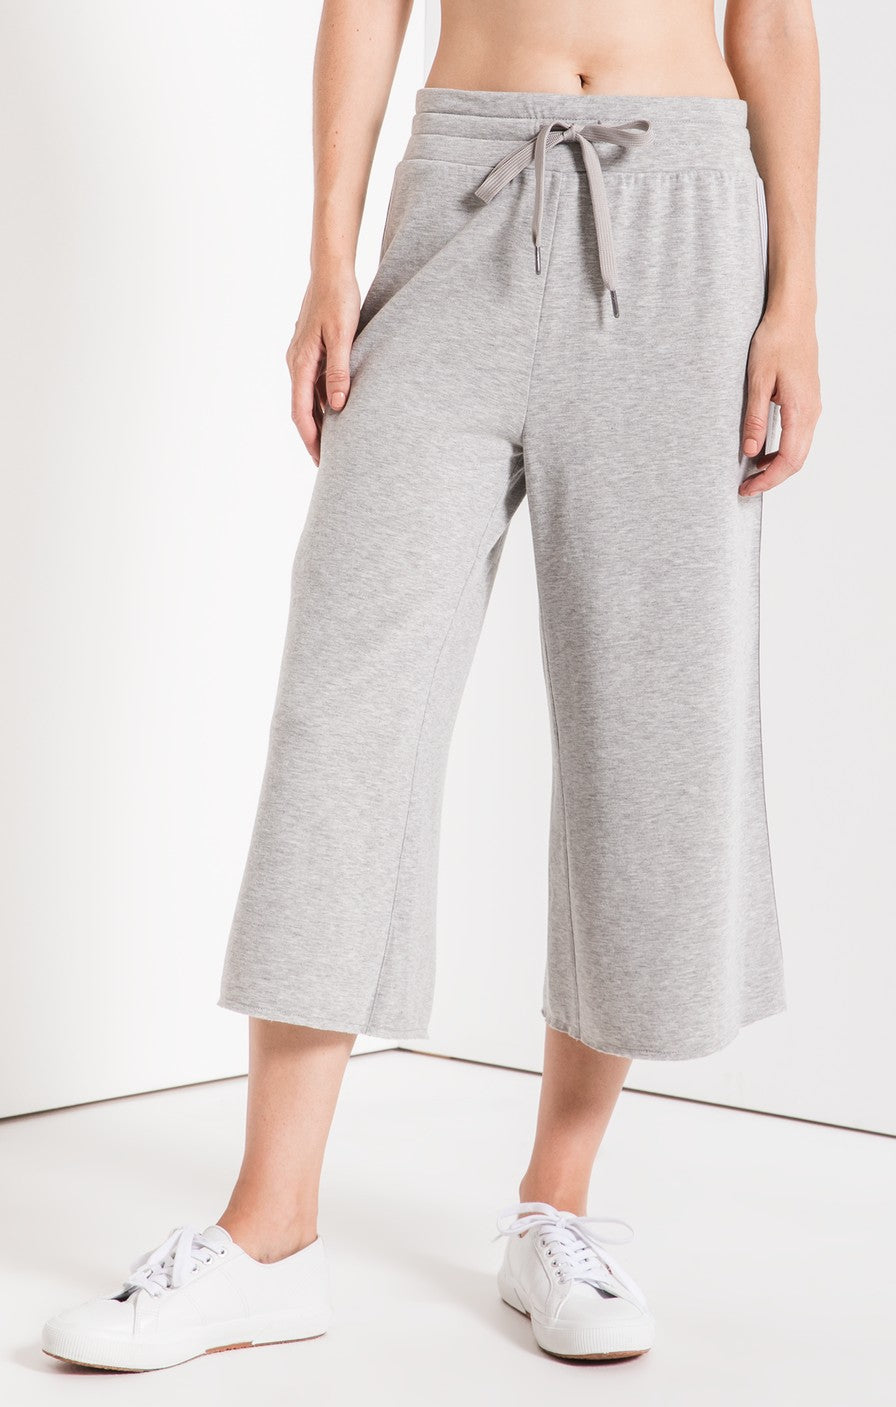 ZSupply Feather Fleece Culottes